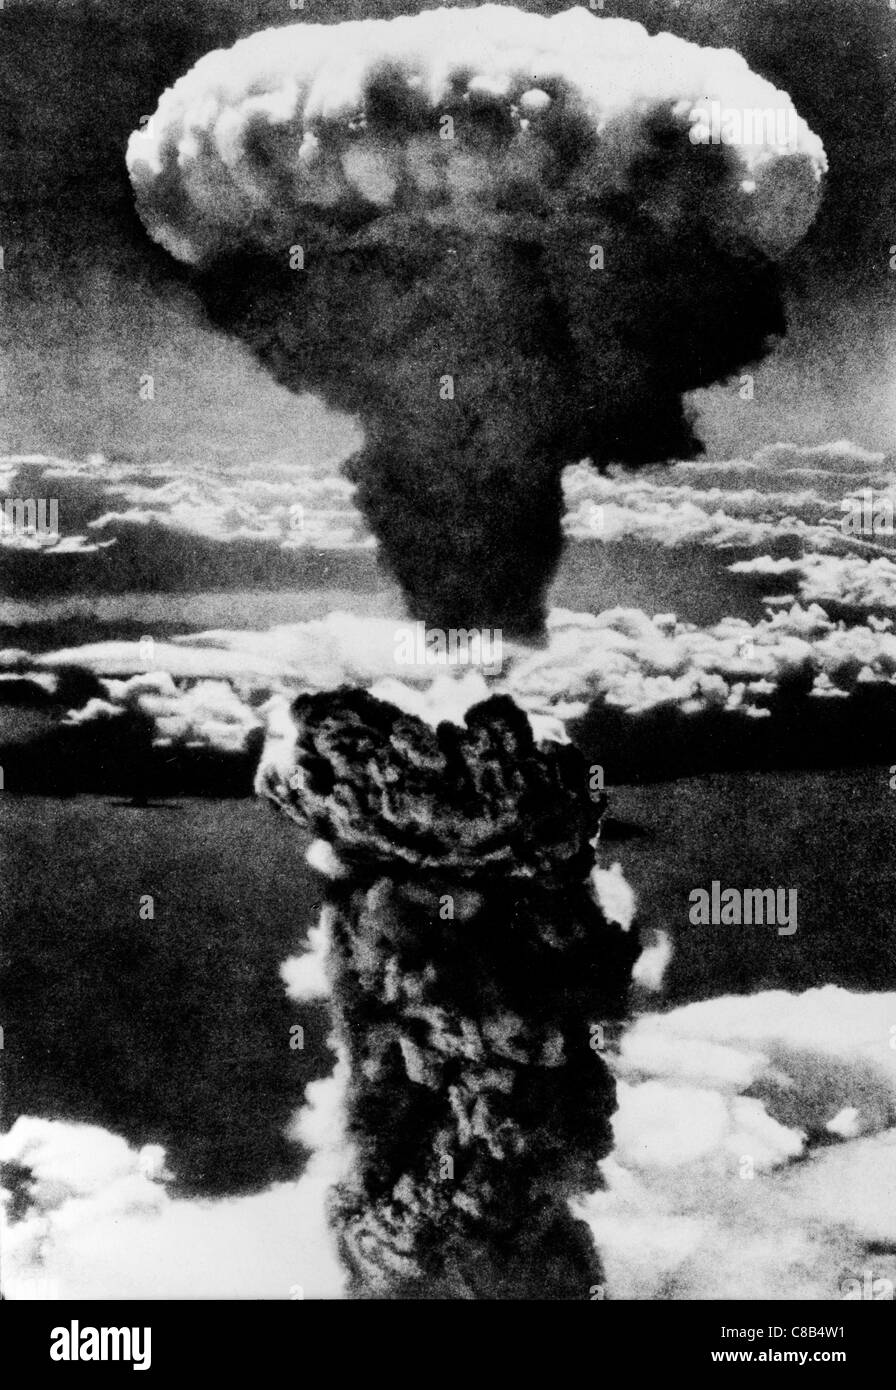 atomic explosion in Hiroshima,1945 - Stock Image